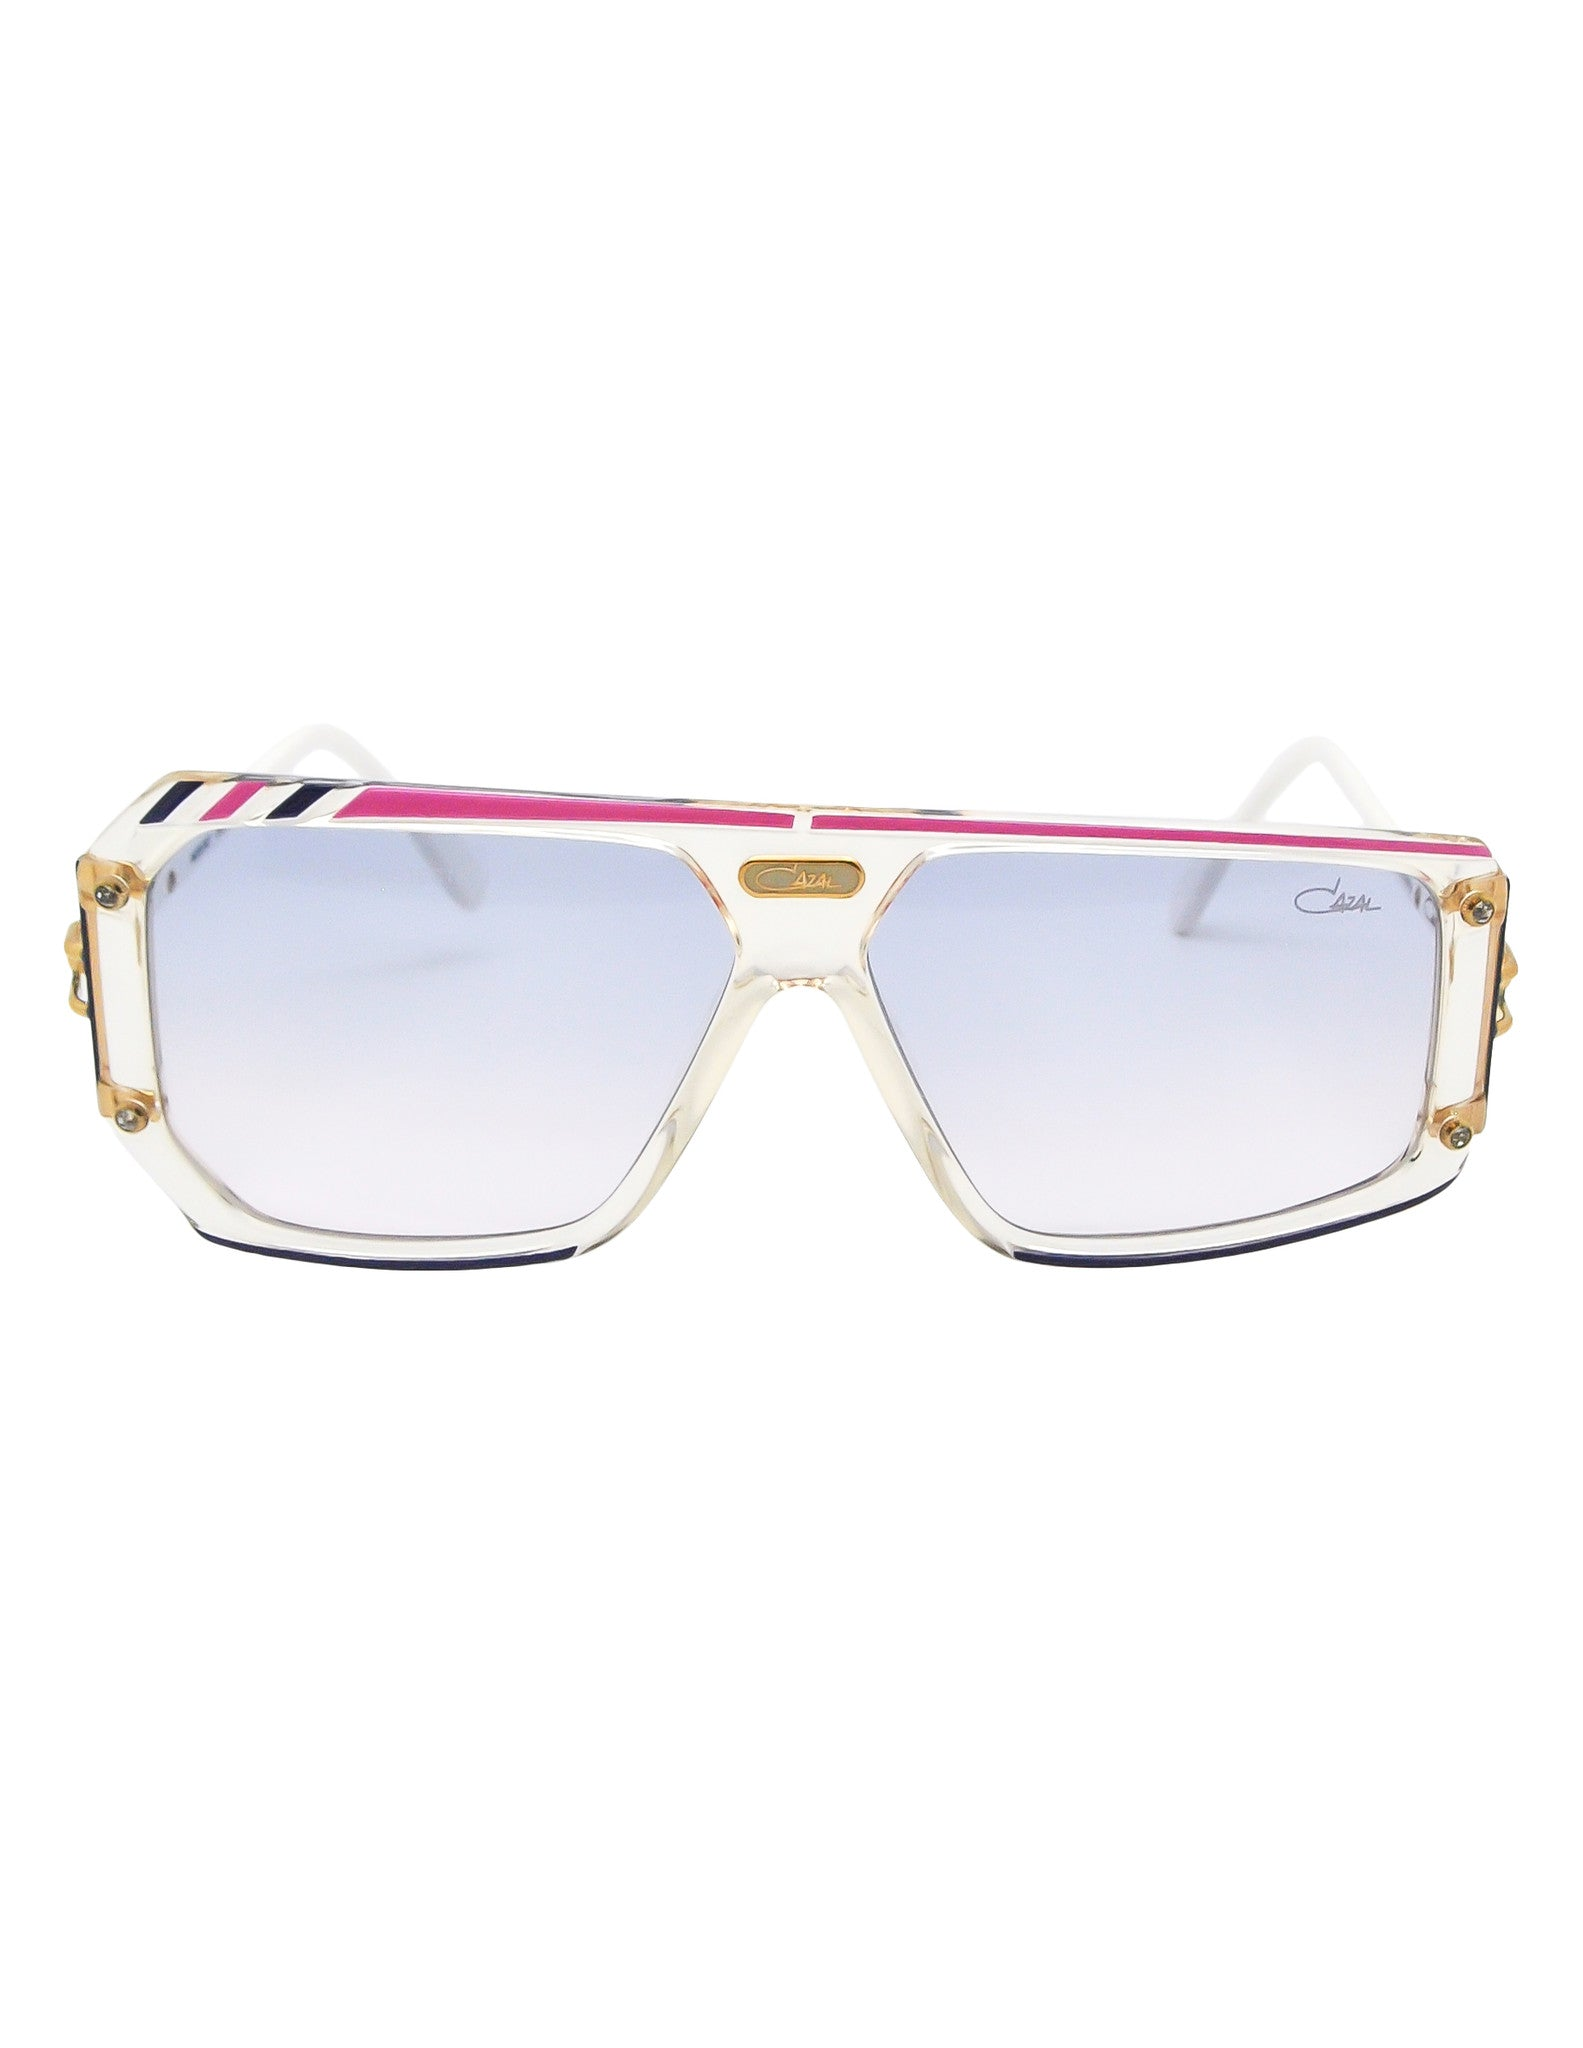 Cazal Vintage Asymmetrical Purple and Pink Sunglasses 867 125 - Amarcord Vintage Fashion  - 1